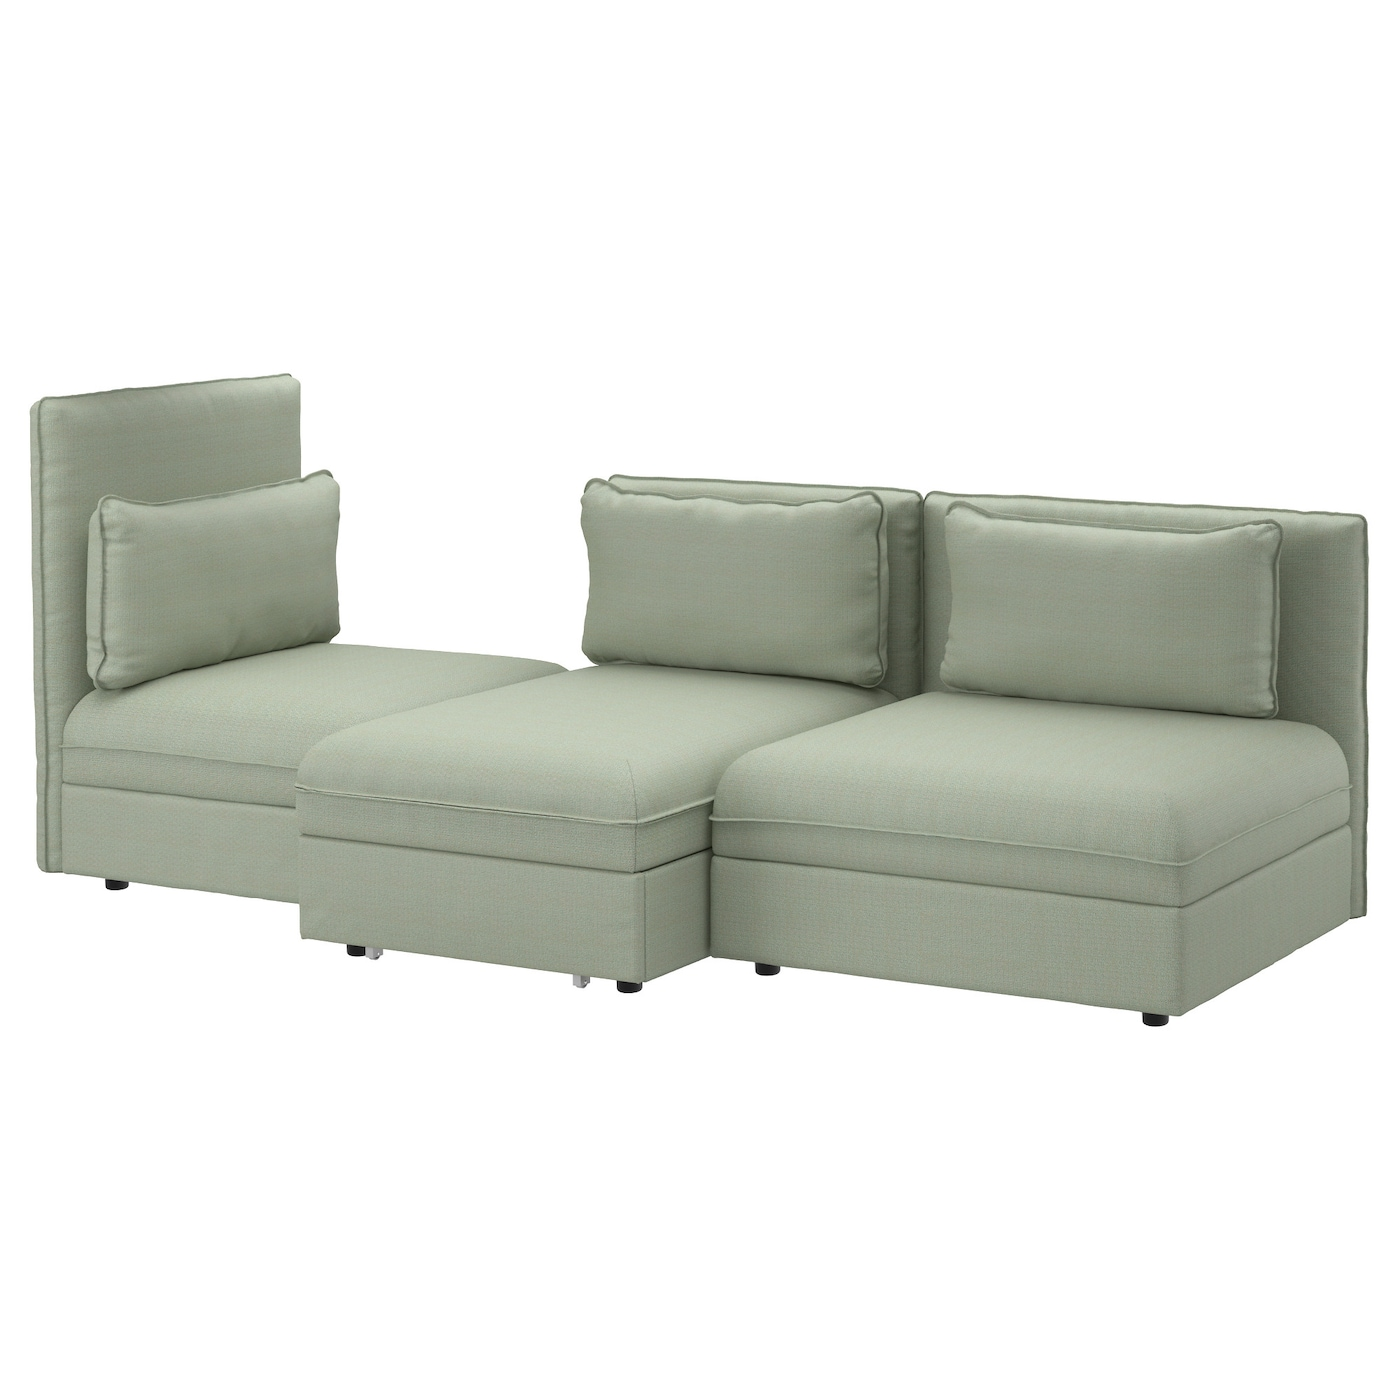 Vallentuna 3 seat sofa with bed hillared green ikea for Ikea couch planer